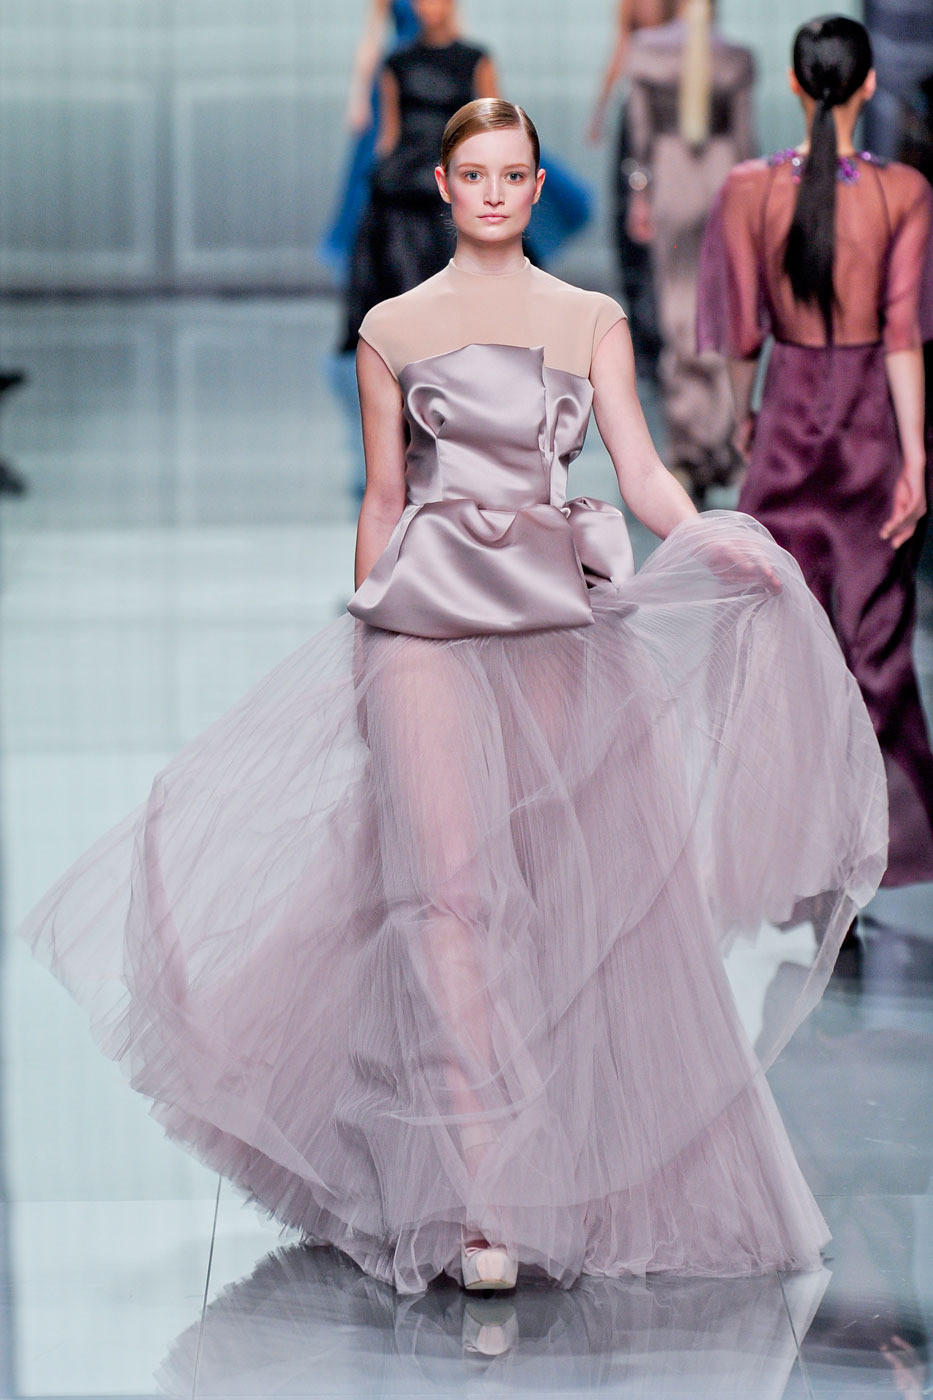 2012 Fall 2013 Winter Nail Polish Trends: Christian Dior Fall 2012 Runway Pictures